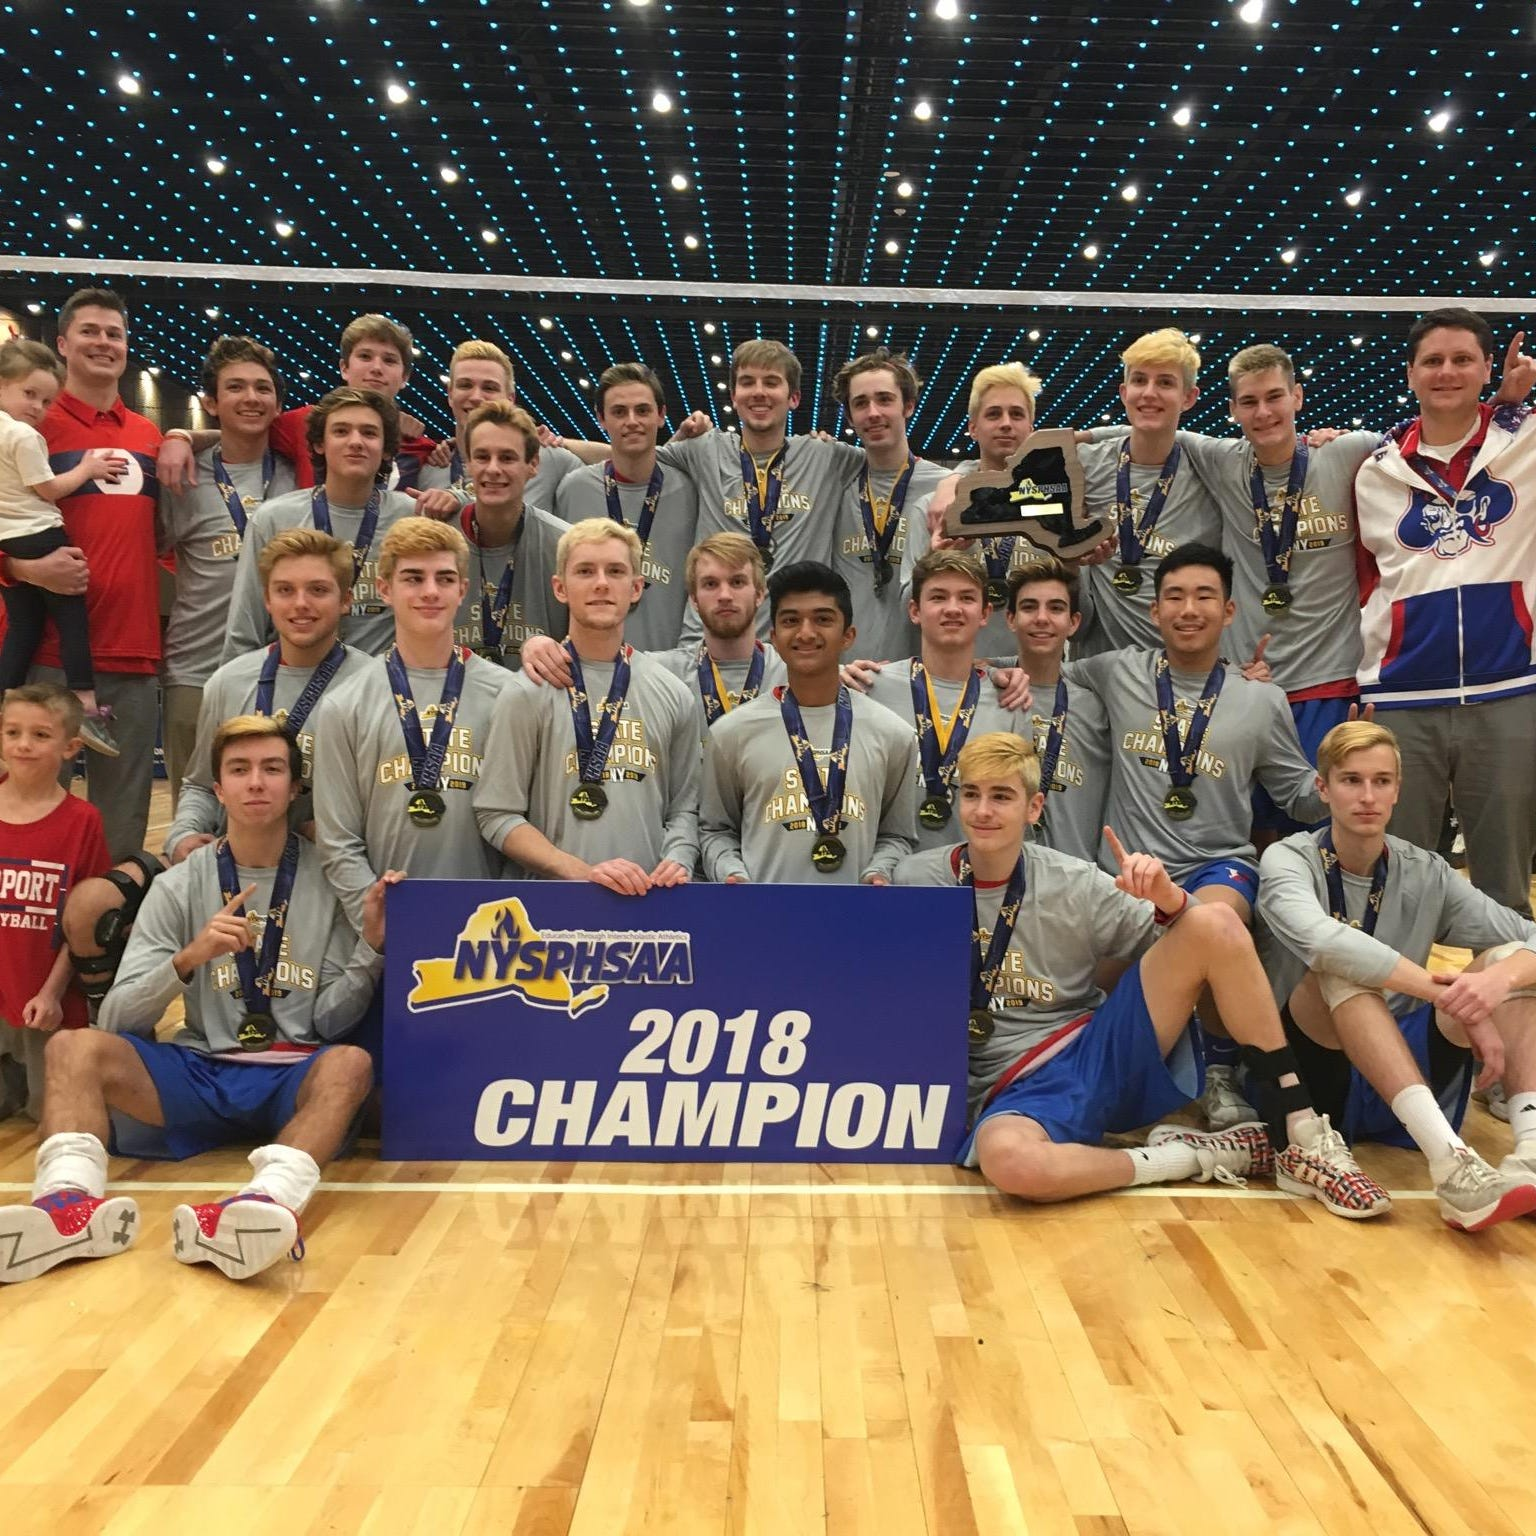 Fairport boys volleyball wins 2018 state championship